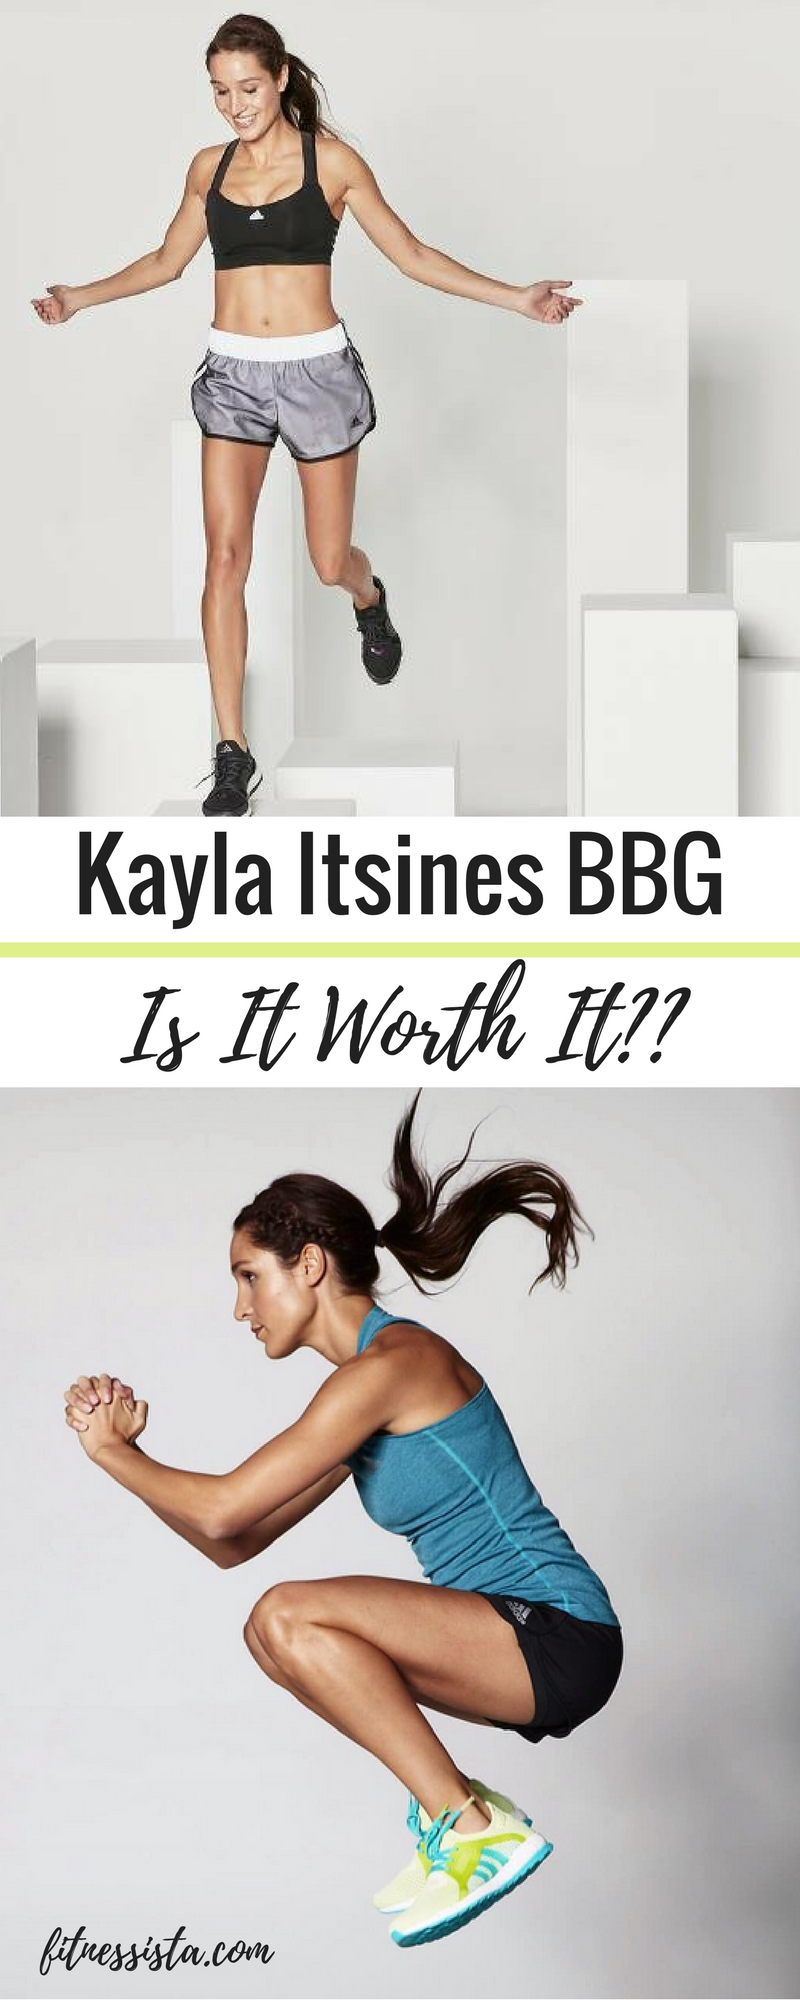 Here's Why Kayla Itsines' Workouts Are Taking Over the World